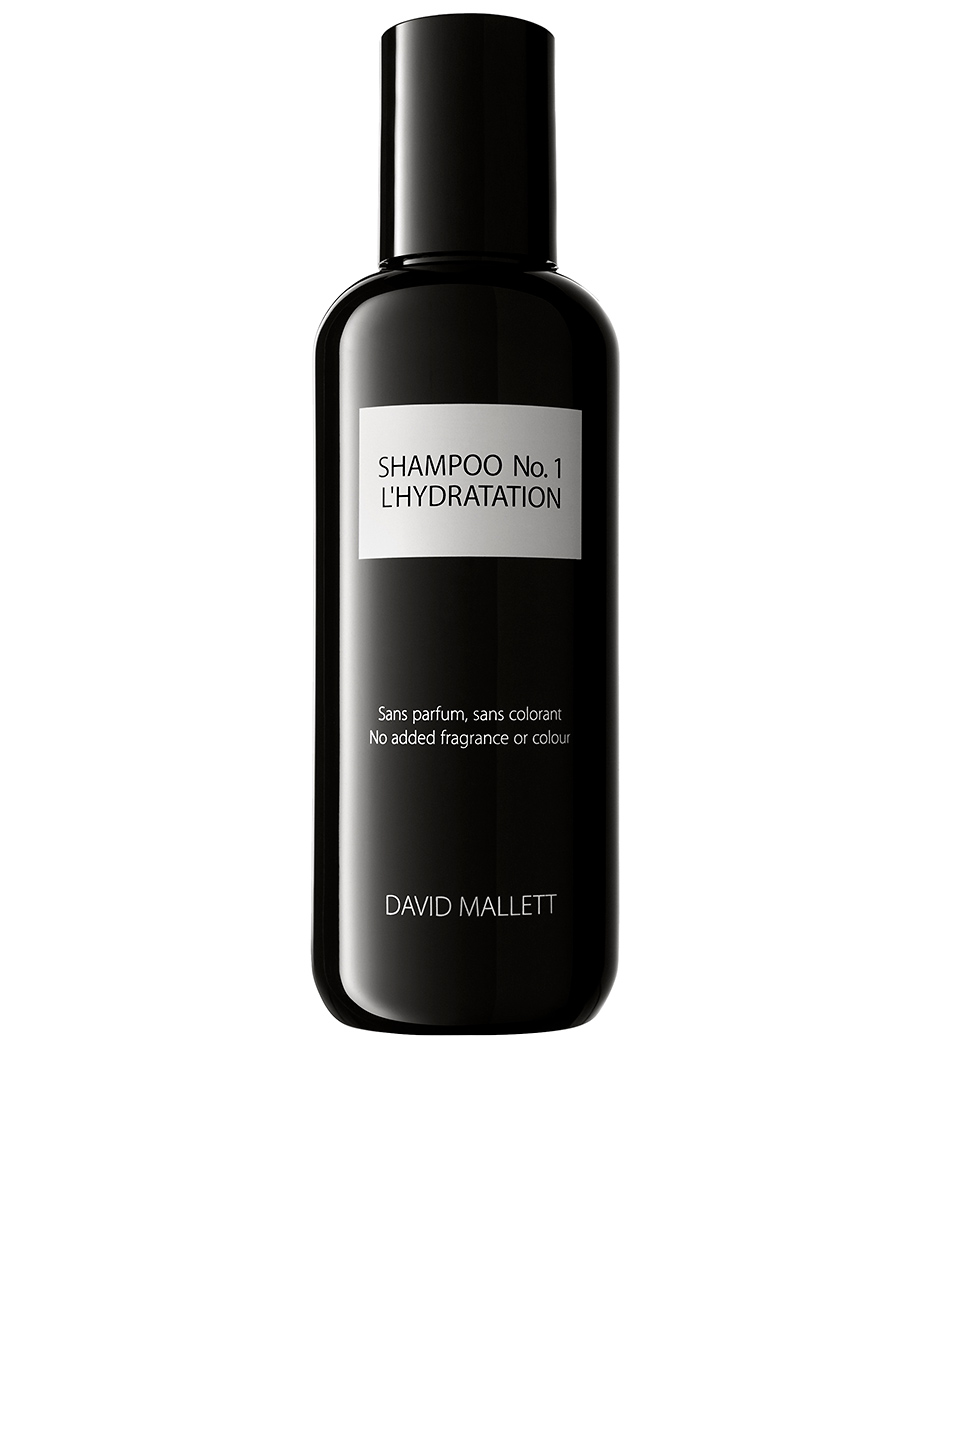 David Mallett Shampoo No. 1 in